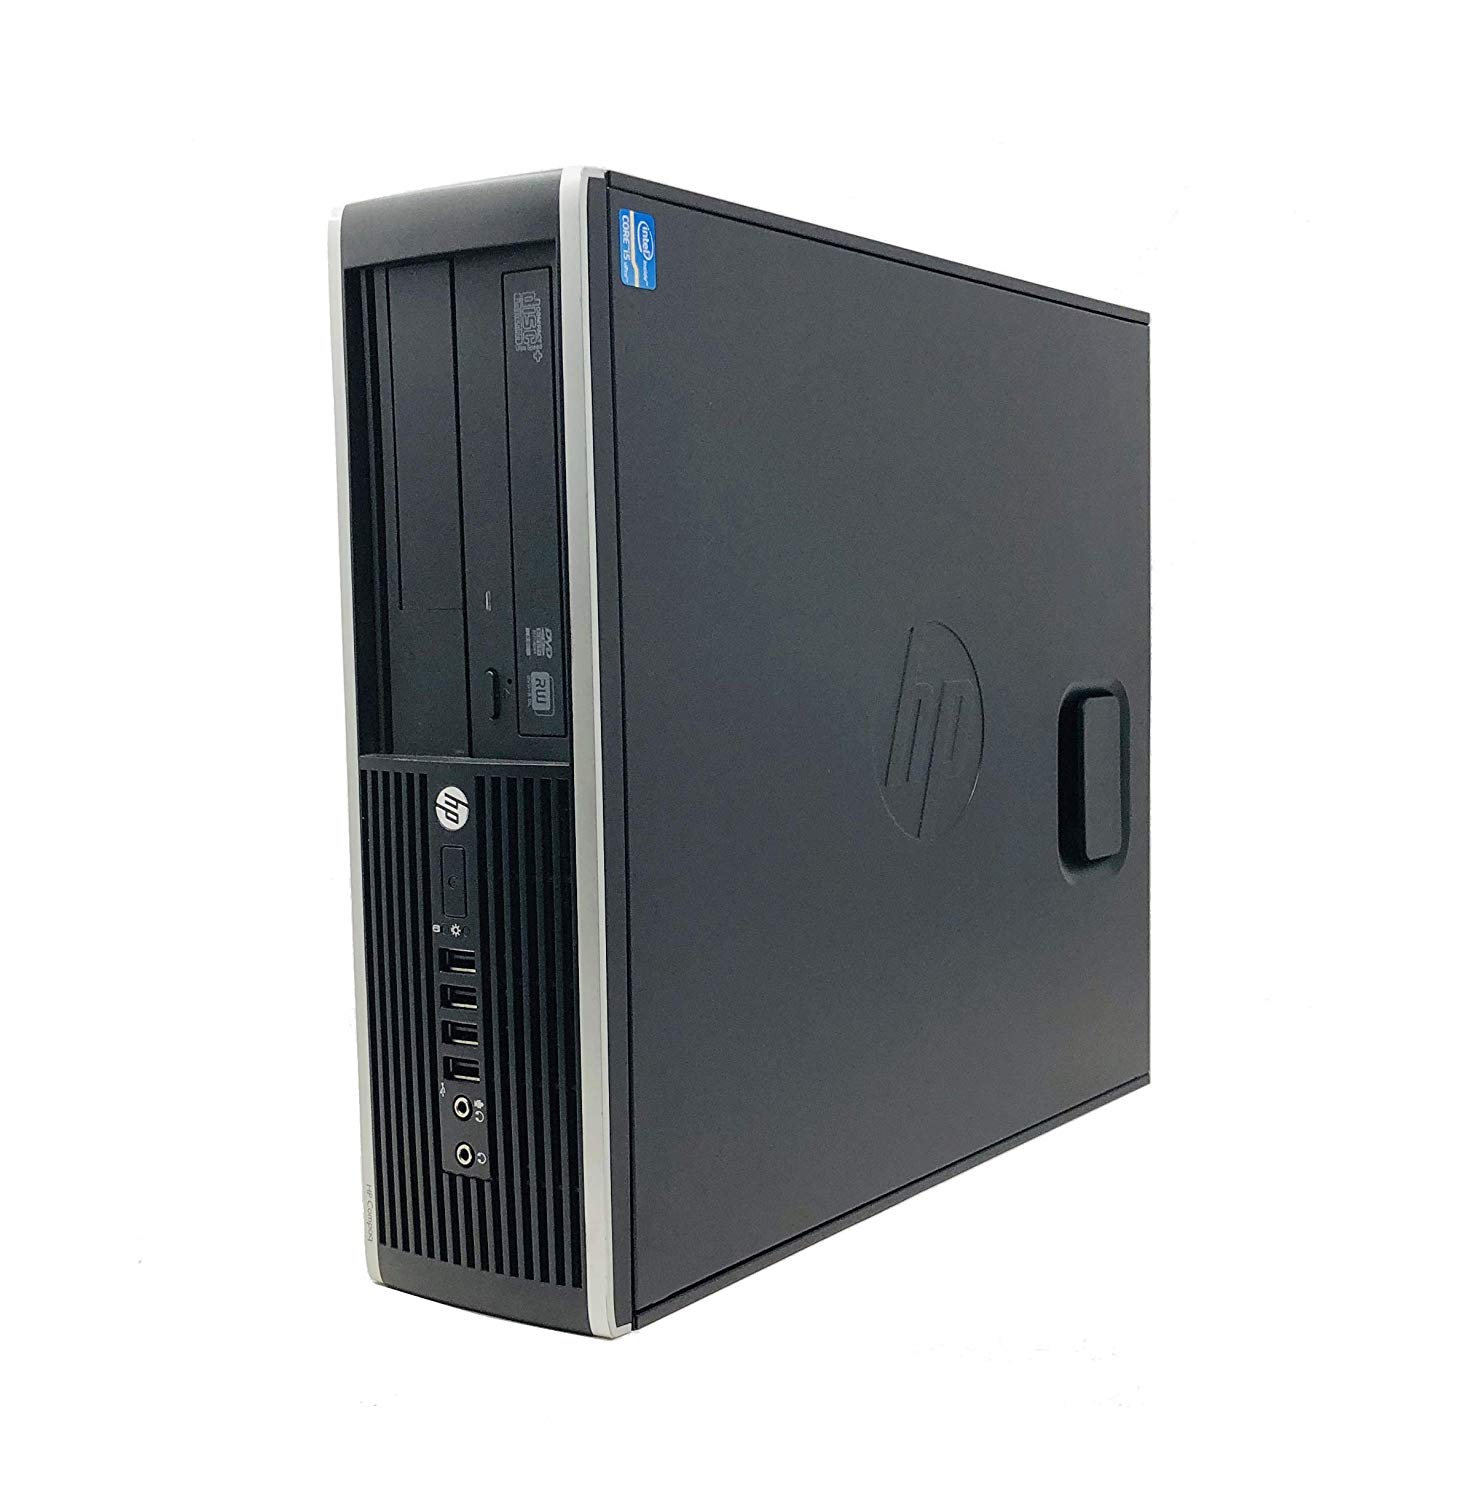 HP 8200 - Ordenador de sobremesa (<font><b>i5</b></font>-<font><b>2400</b></font>, 4GB RAM, HDD 250GB, DVD, Windows 10 HOME) - Negro (Reacondicionado) image